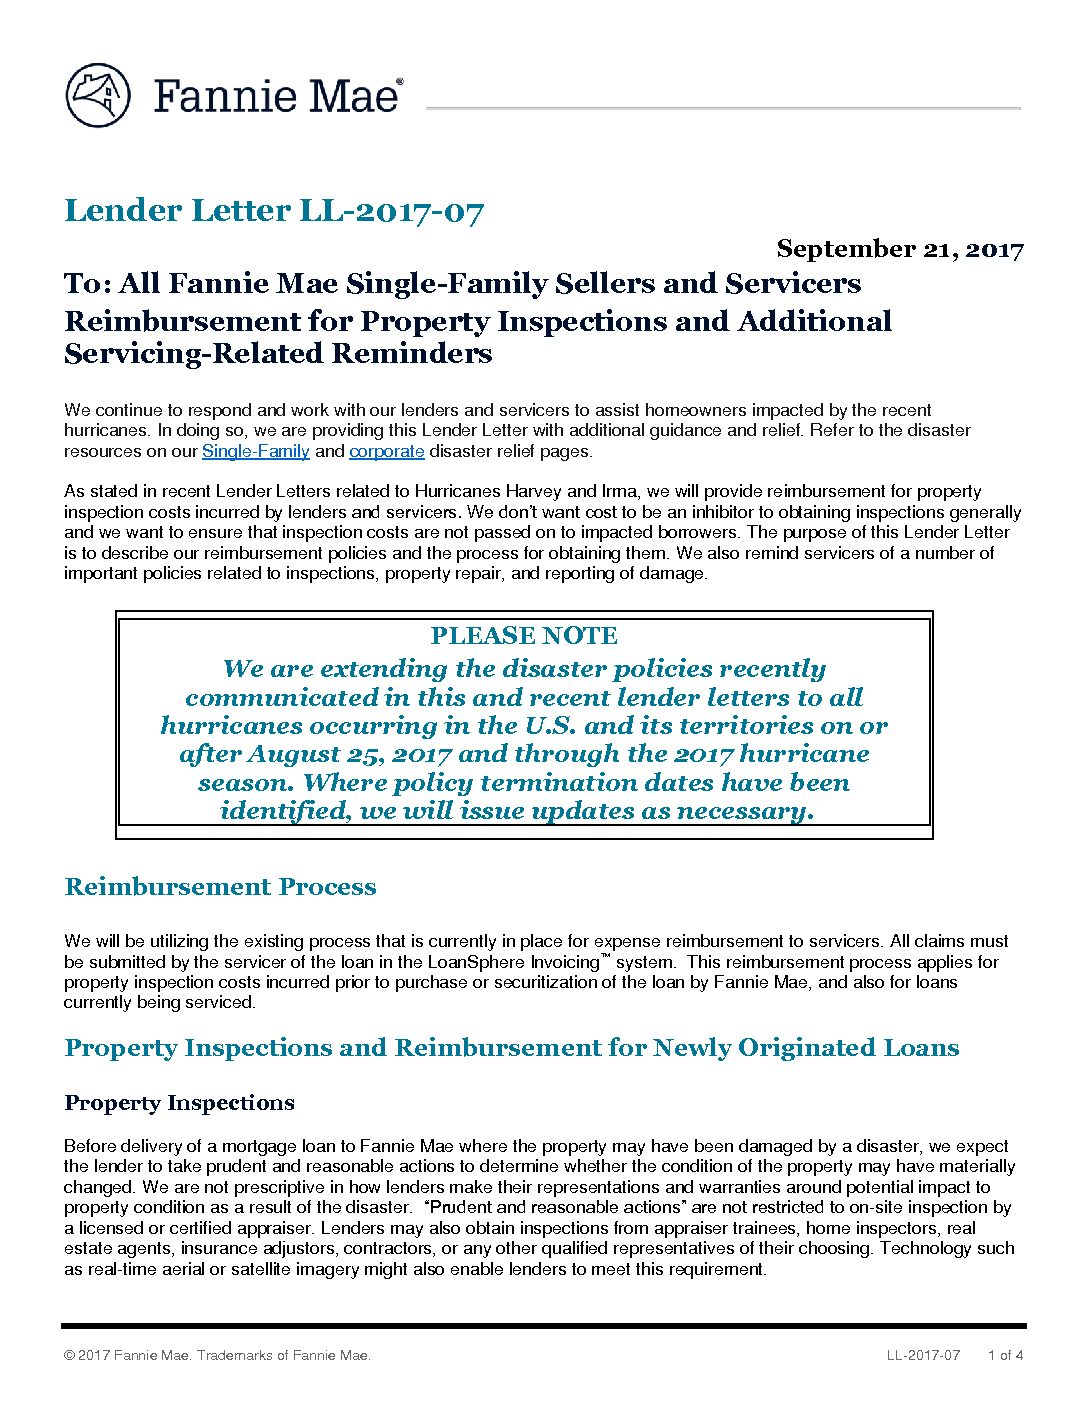 Click here to view the Fannie Mae Lender Letter - TENA